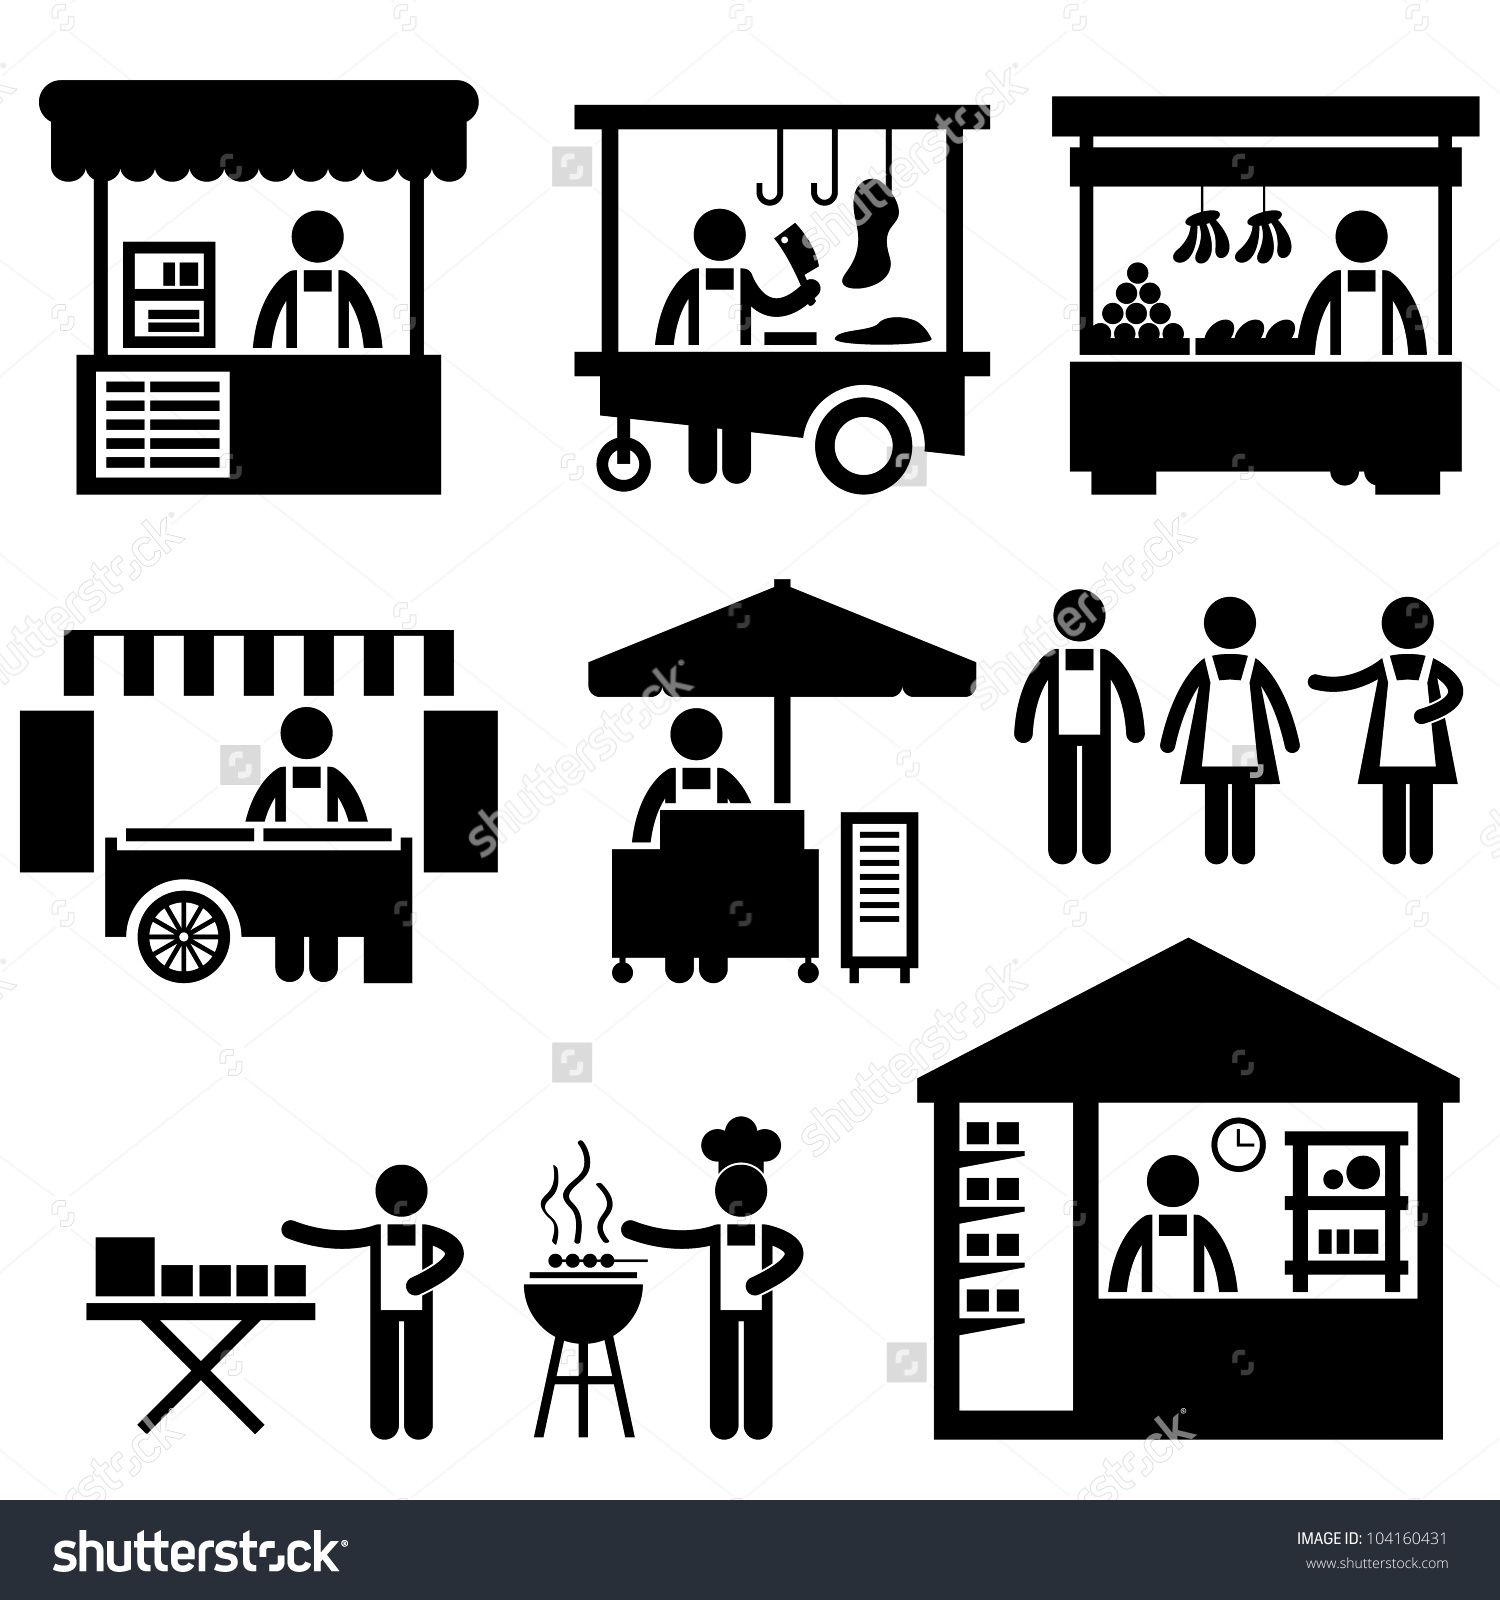 Stock vector business stall store booth market marketplace shop business stall store booth market marketplace shop icon symbol sign pictogram vectorjunky free vectors icons logos and biocorpaavc Gallery